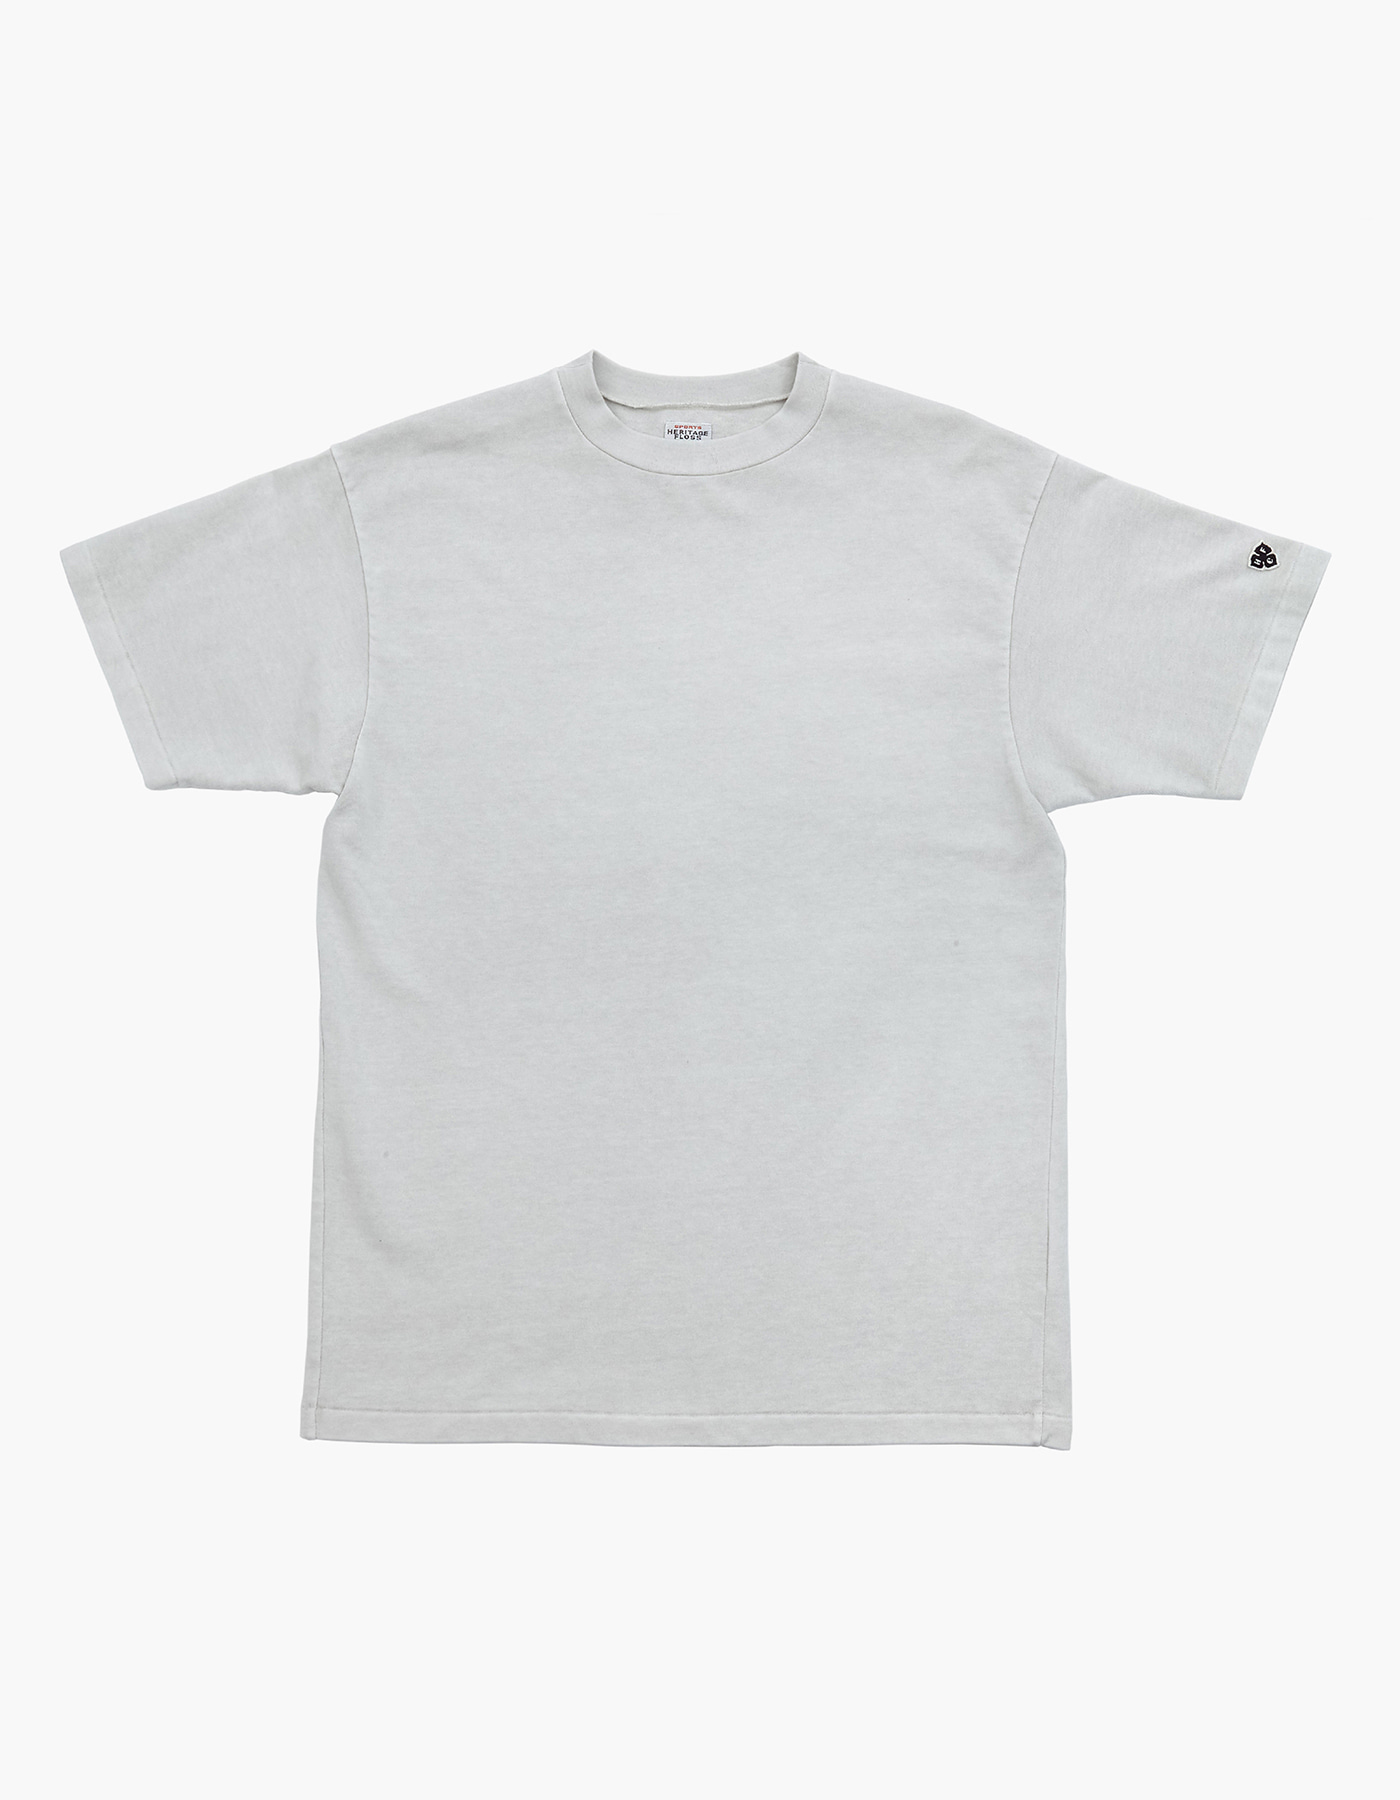 10S COMPACT YARN T-SHIRT / LIGHT GREY